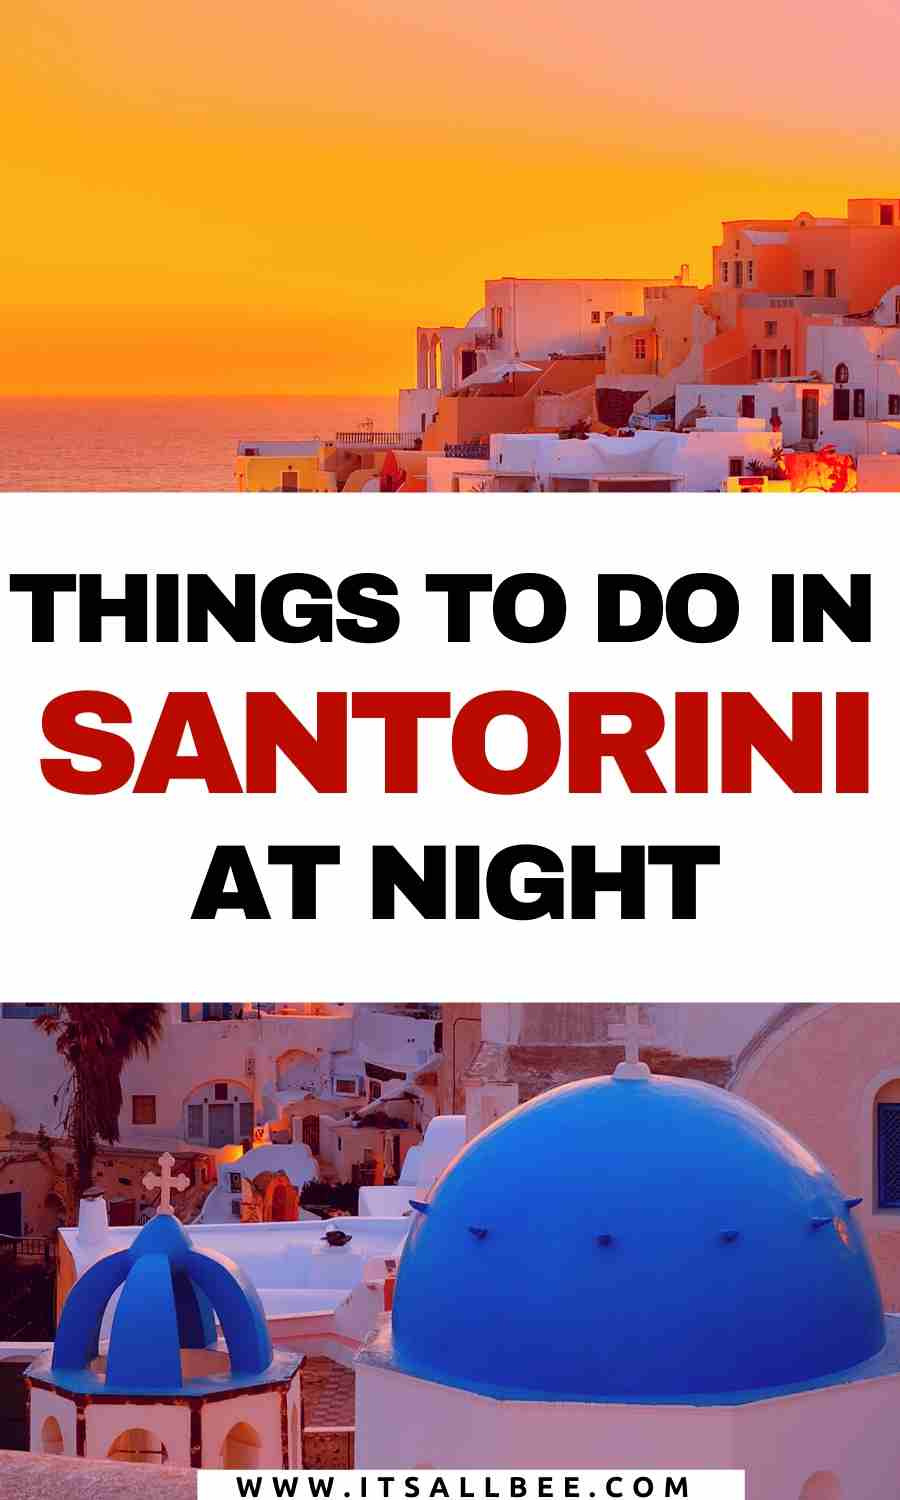 fira nightlife | perissa santorini nightlife | perivolos santorini nightlife